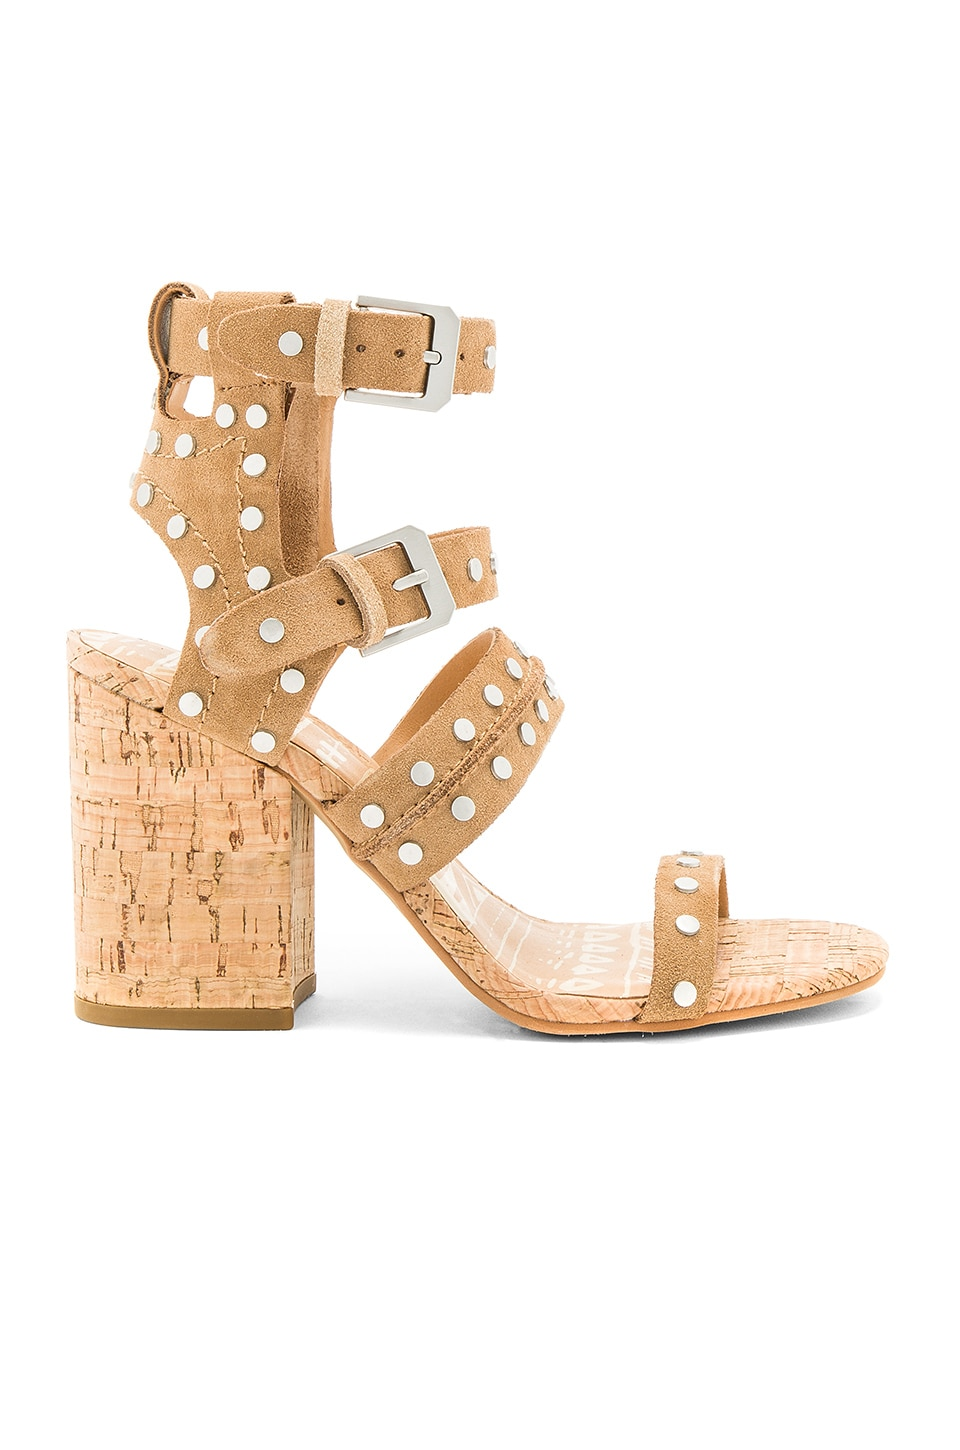 Dolce Vita Effie Sandal in Tan